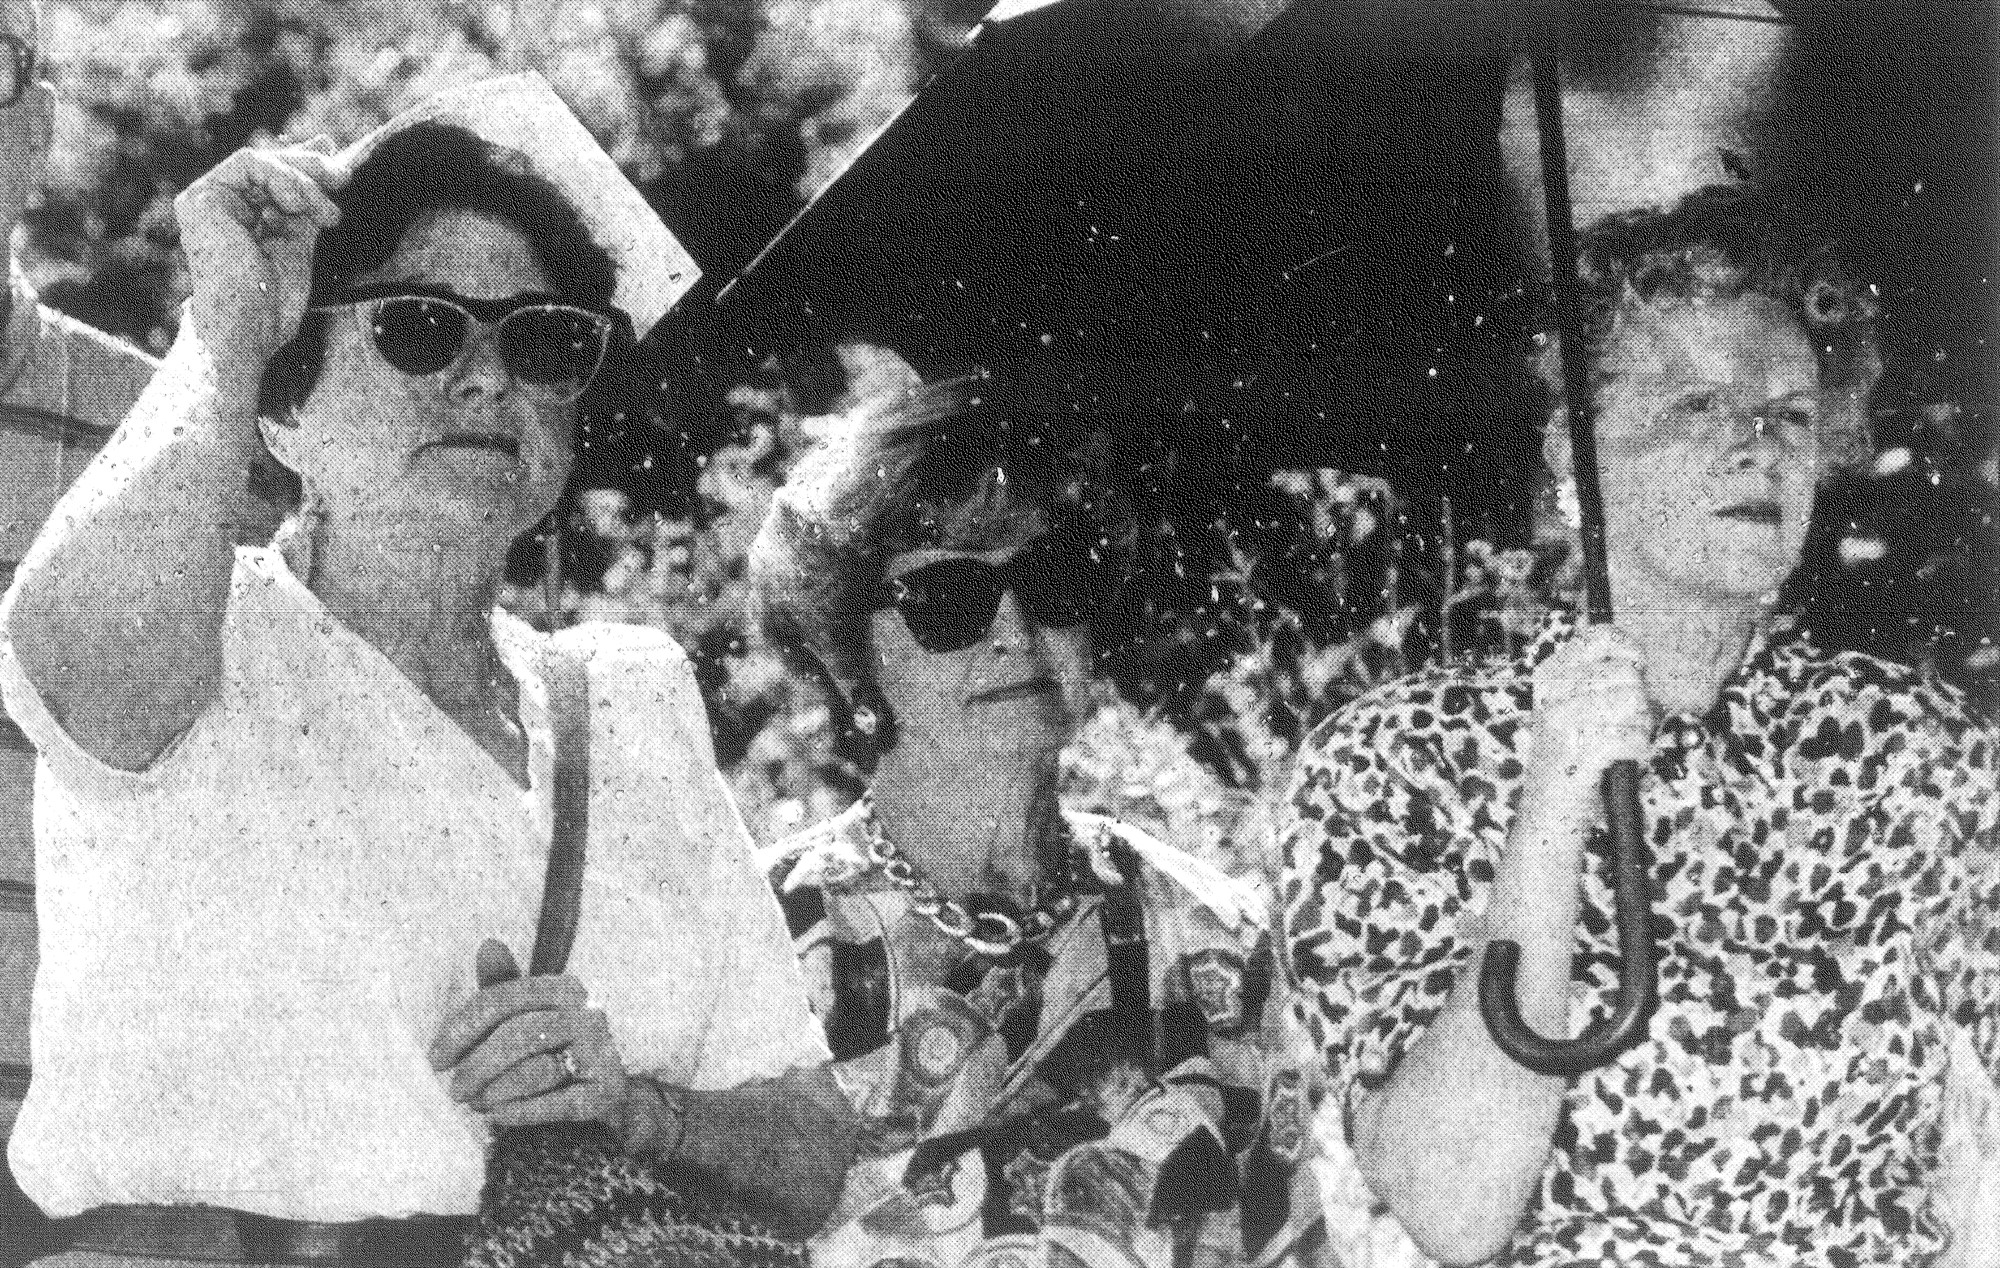 1993 - Cile Moise, left, uses a program to shield her head from the sun while Anna Bynum and Betty Brogdon seek shelter under an umbrella while listening to speeches during groundbreaking ceremonies for Covenant Place retirement home.